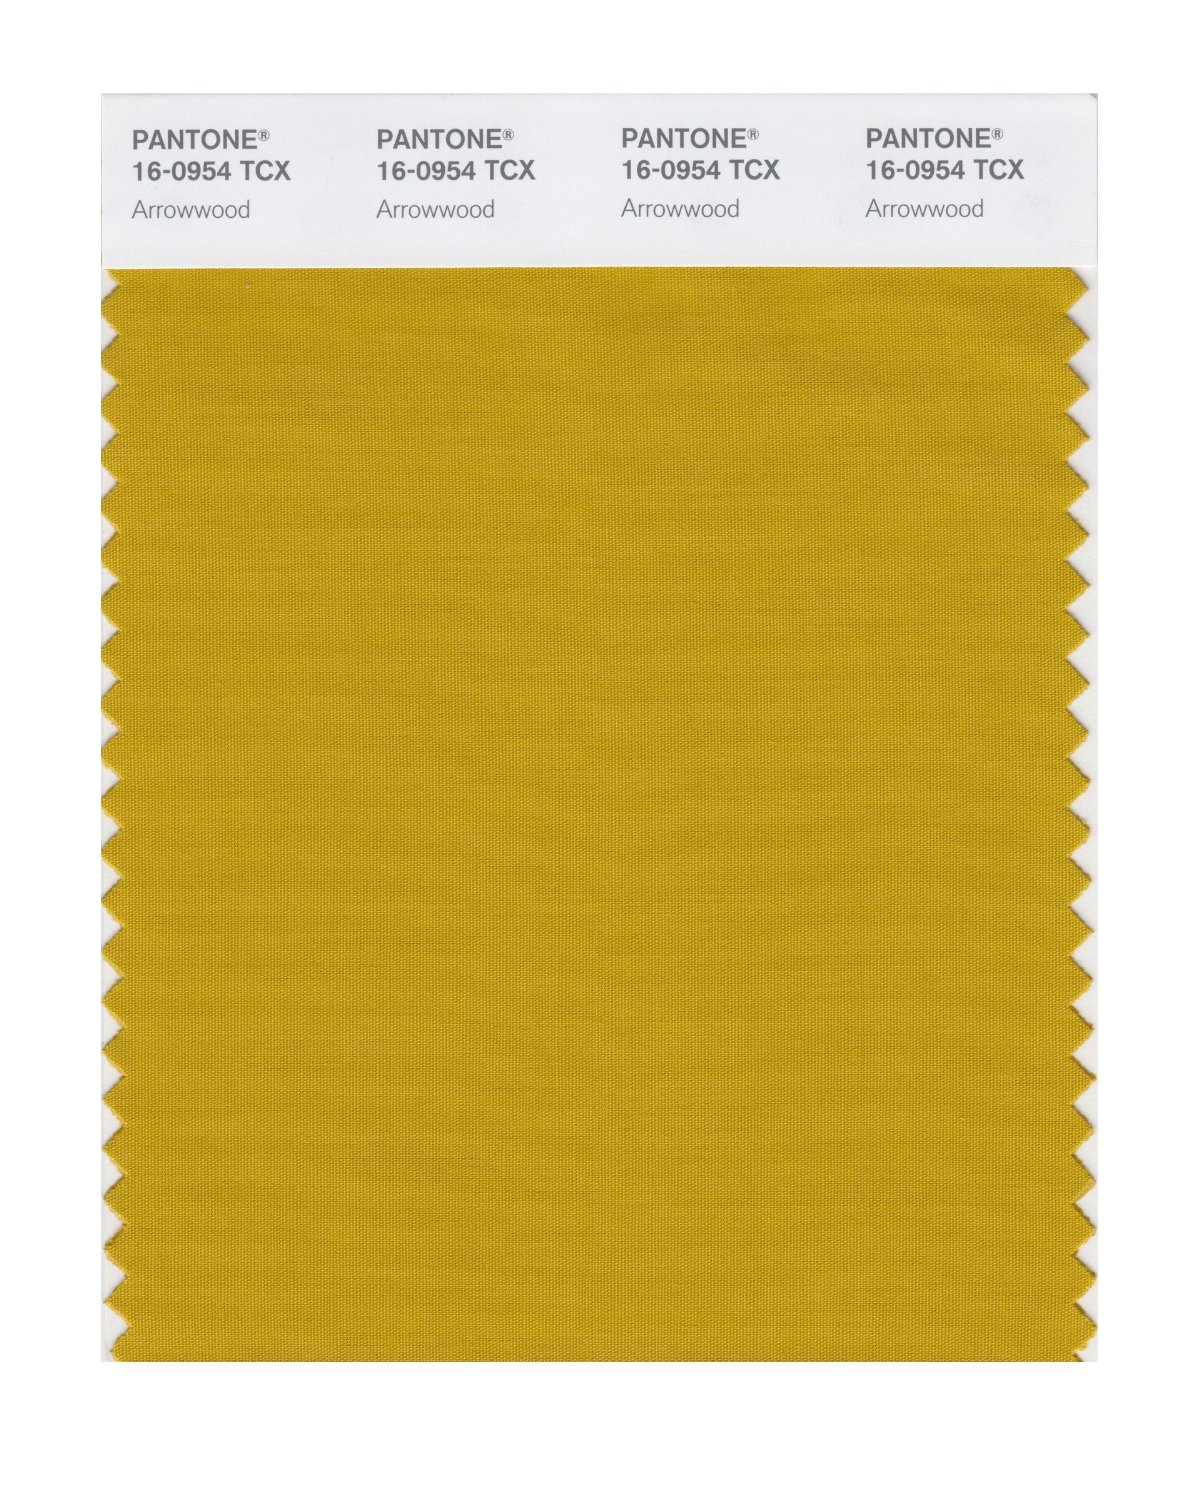 Pantone Smart Swatch 16-0954 Arrowwood